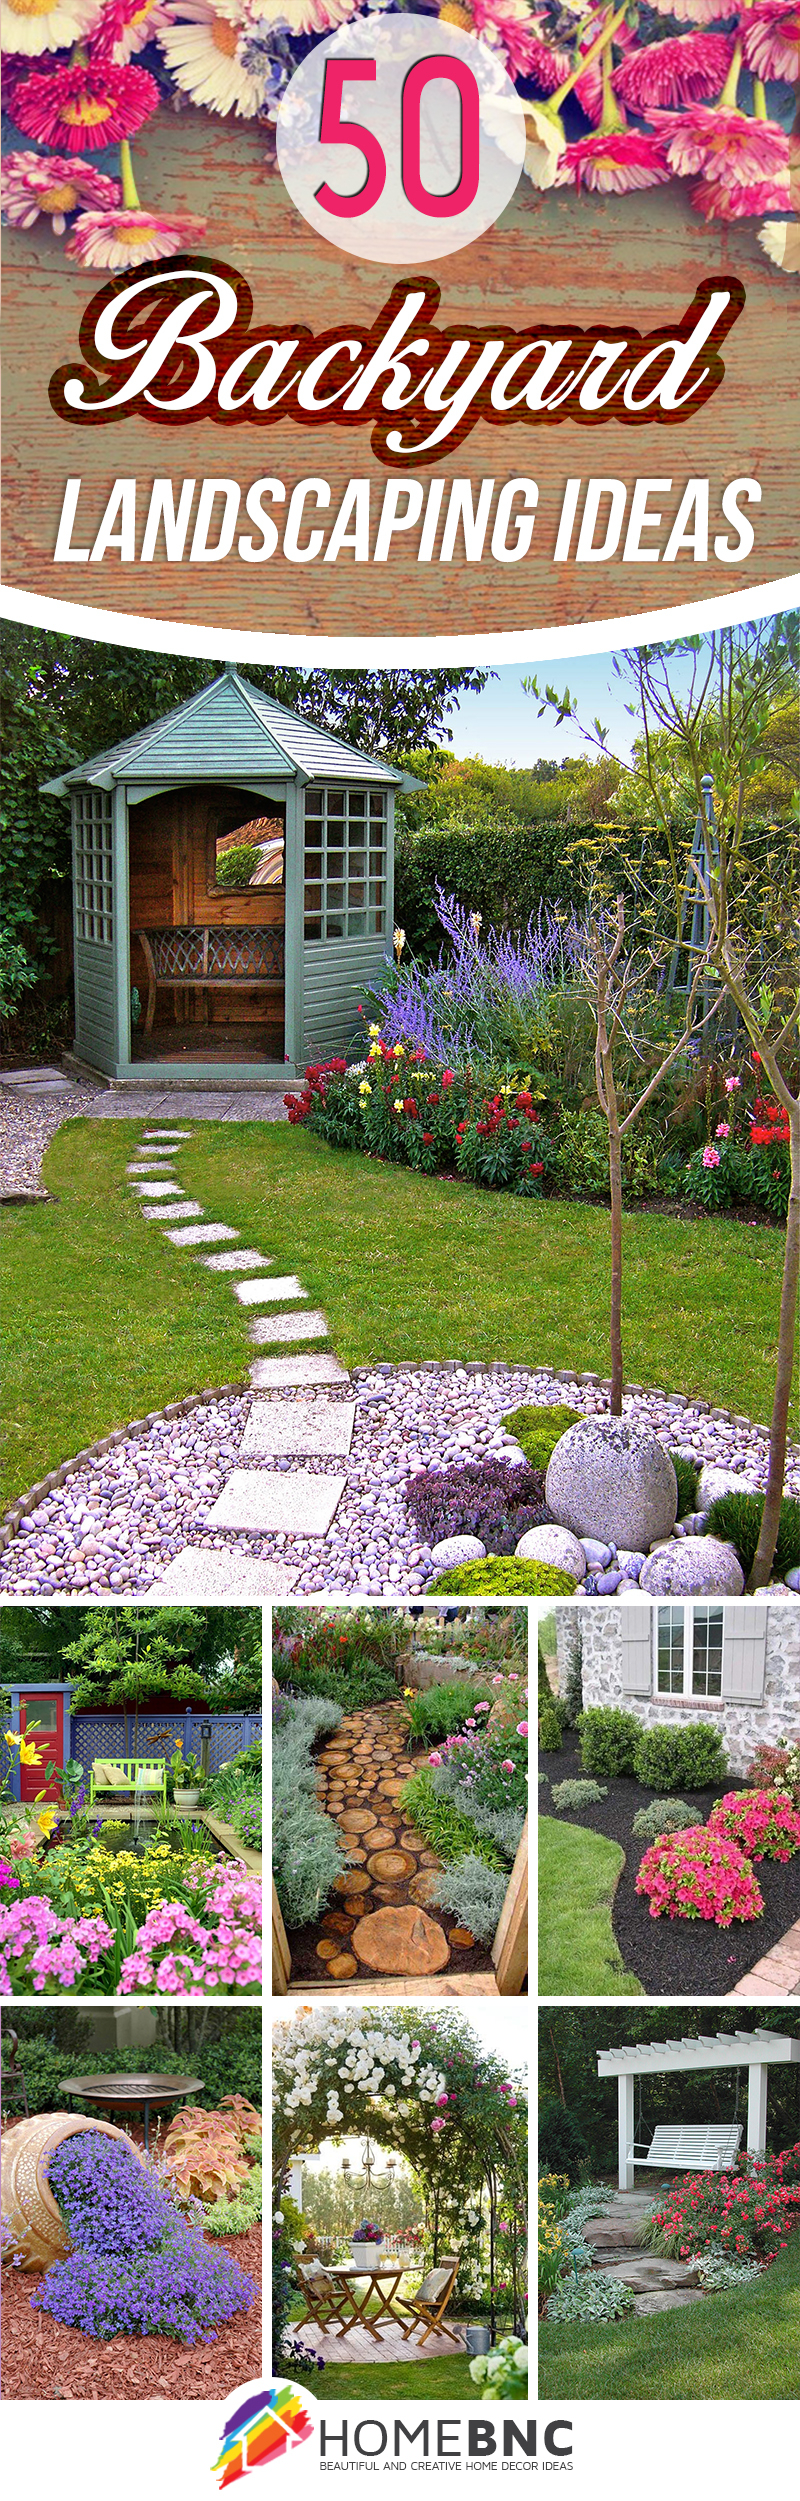 50 Best Backyard Landscaping Ideas And Designs In 2019 intended for Landscaping Ideas Backyard